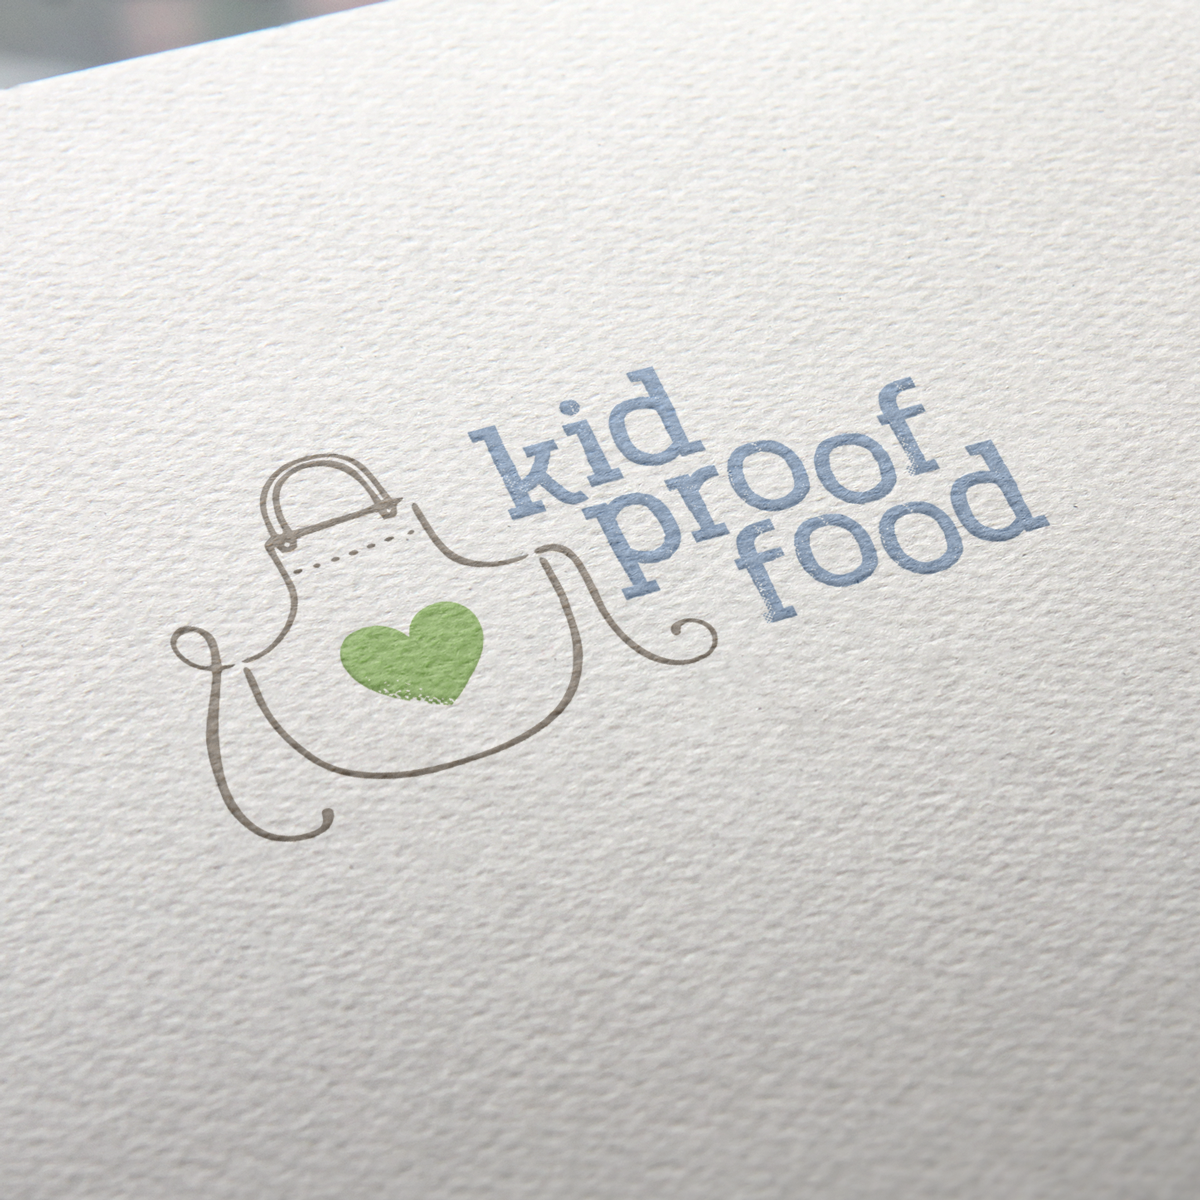 Kid Proof Food Logo Paper Mockup